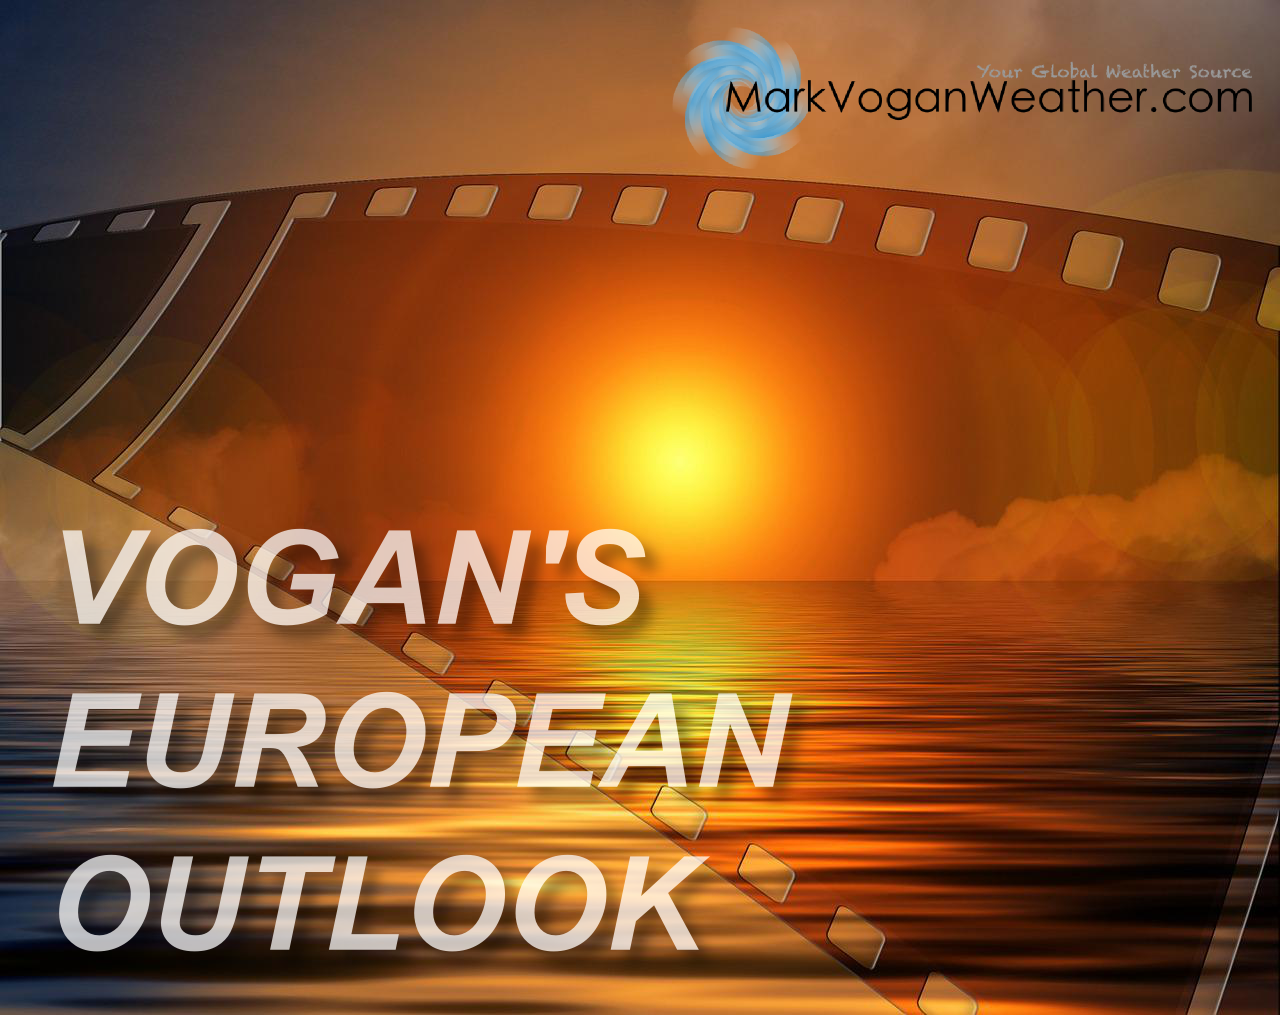 SUN 9 NOV: VOGAN'S EUROPEAN OUTLOOK